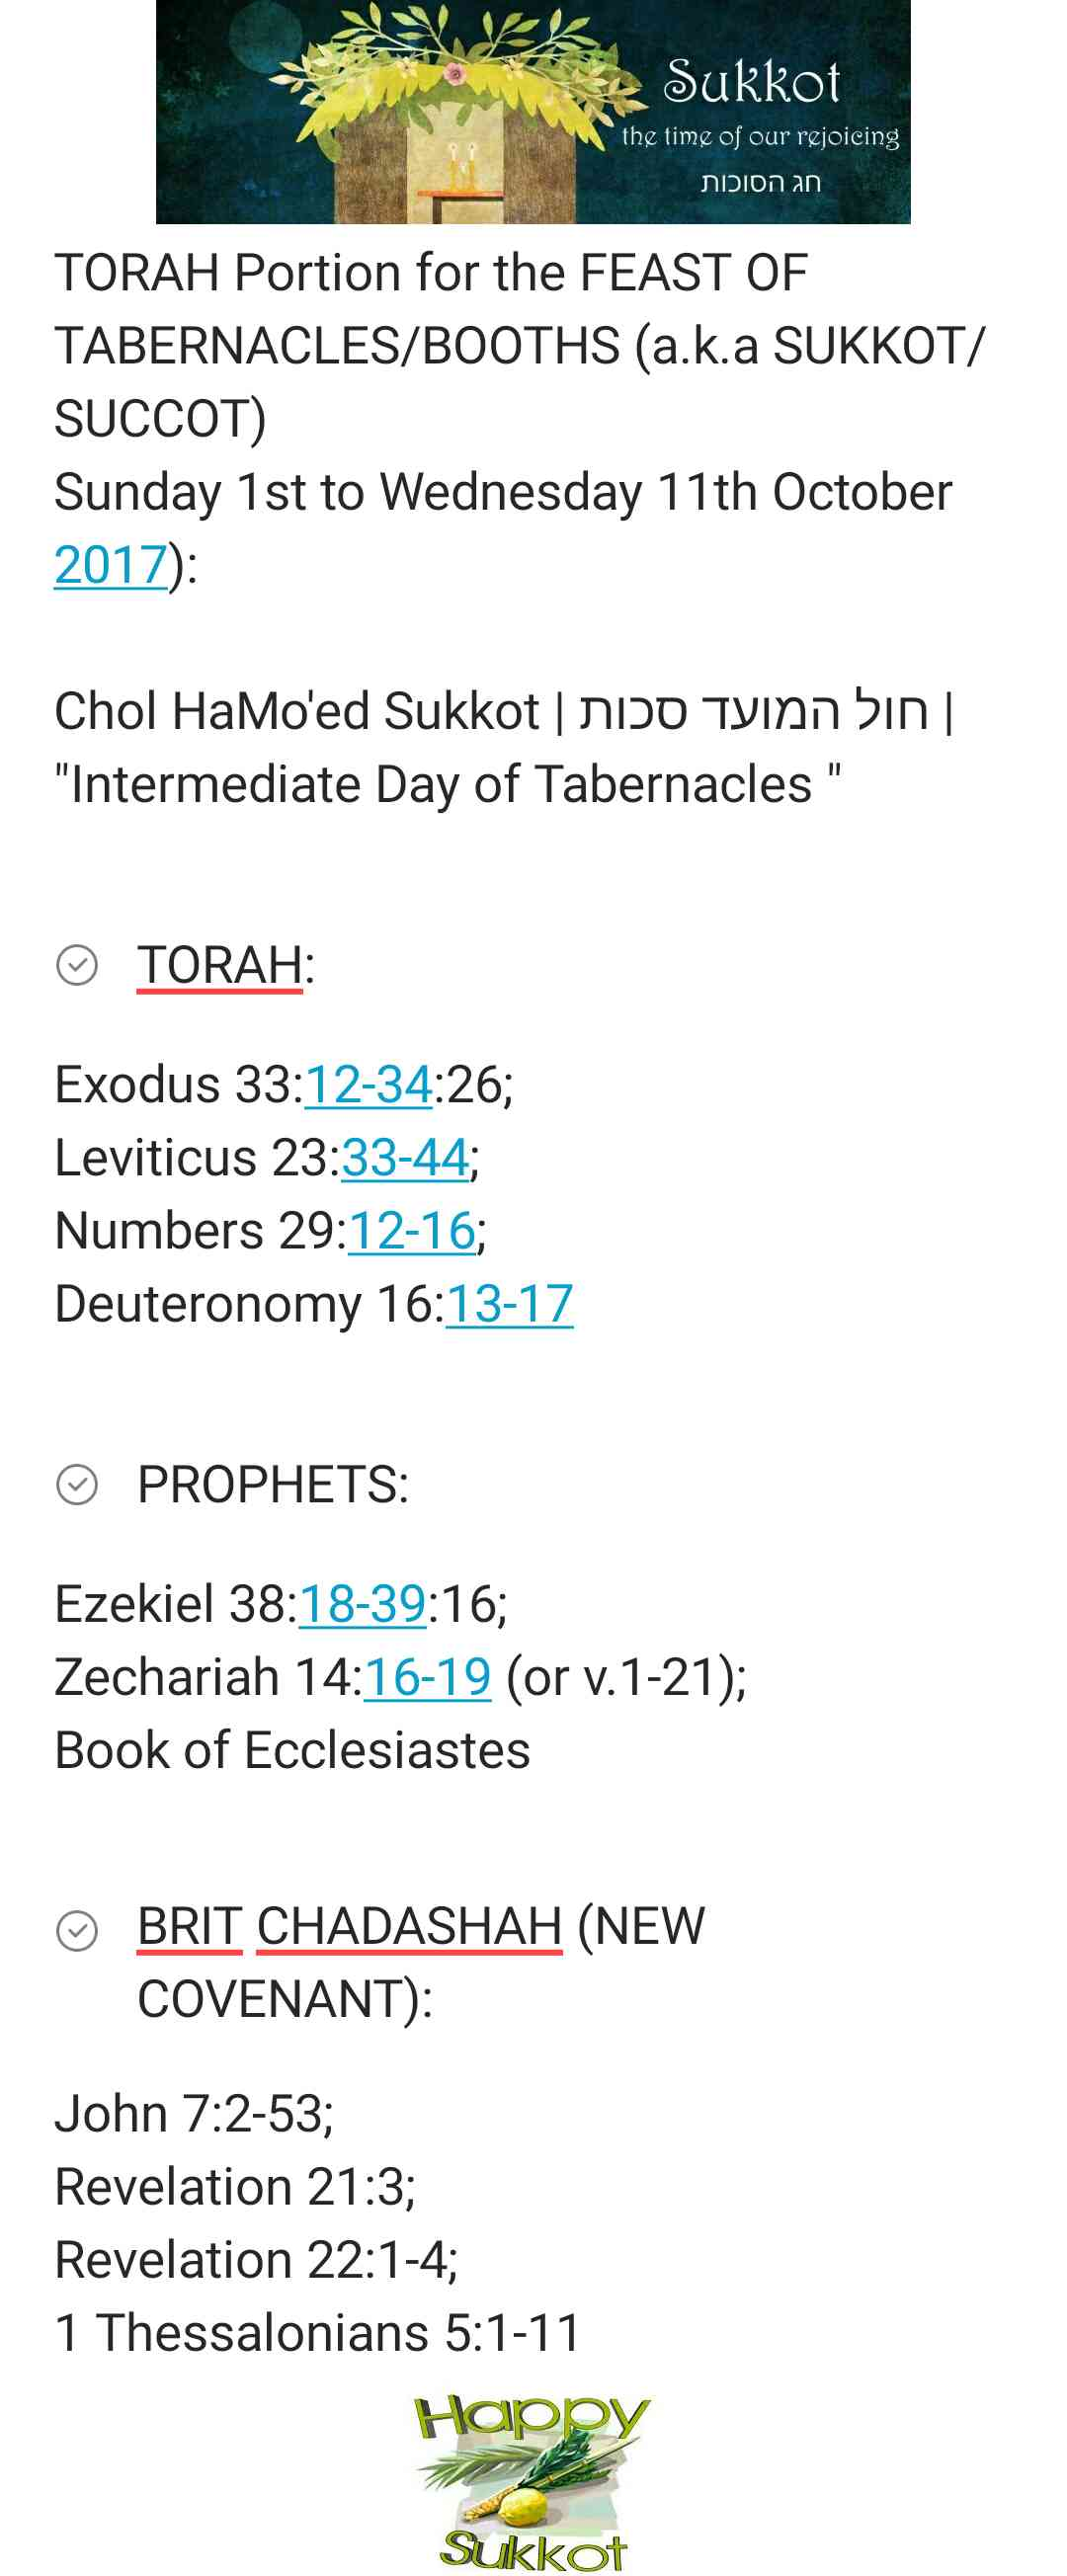 The Feast of TABERNACLES / BOOTHS (In Hebrew: SUKKOT